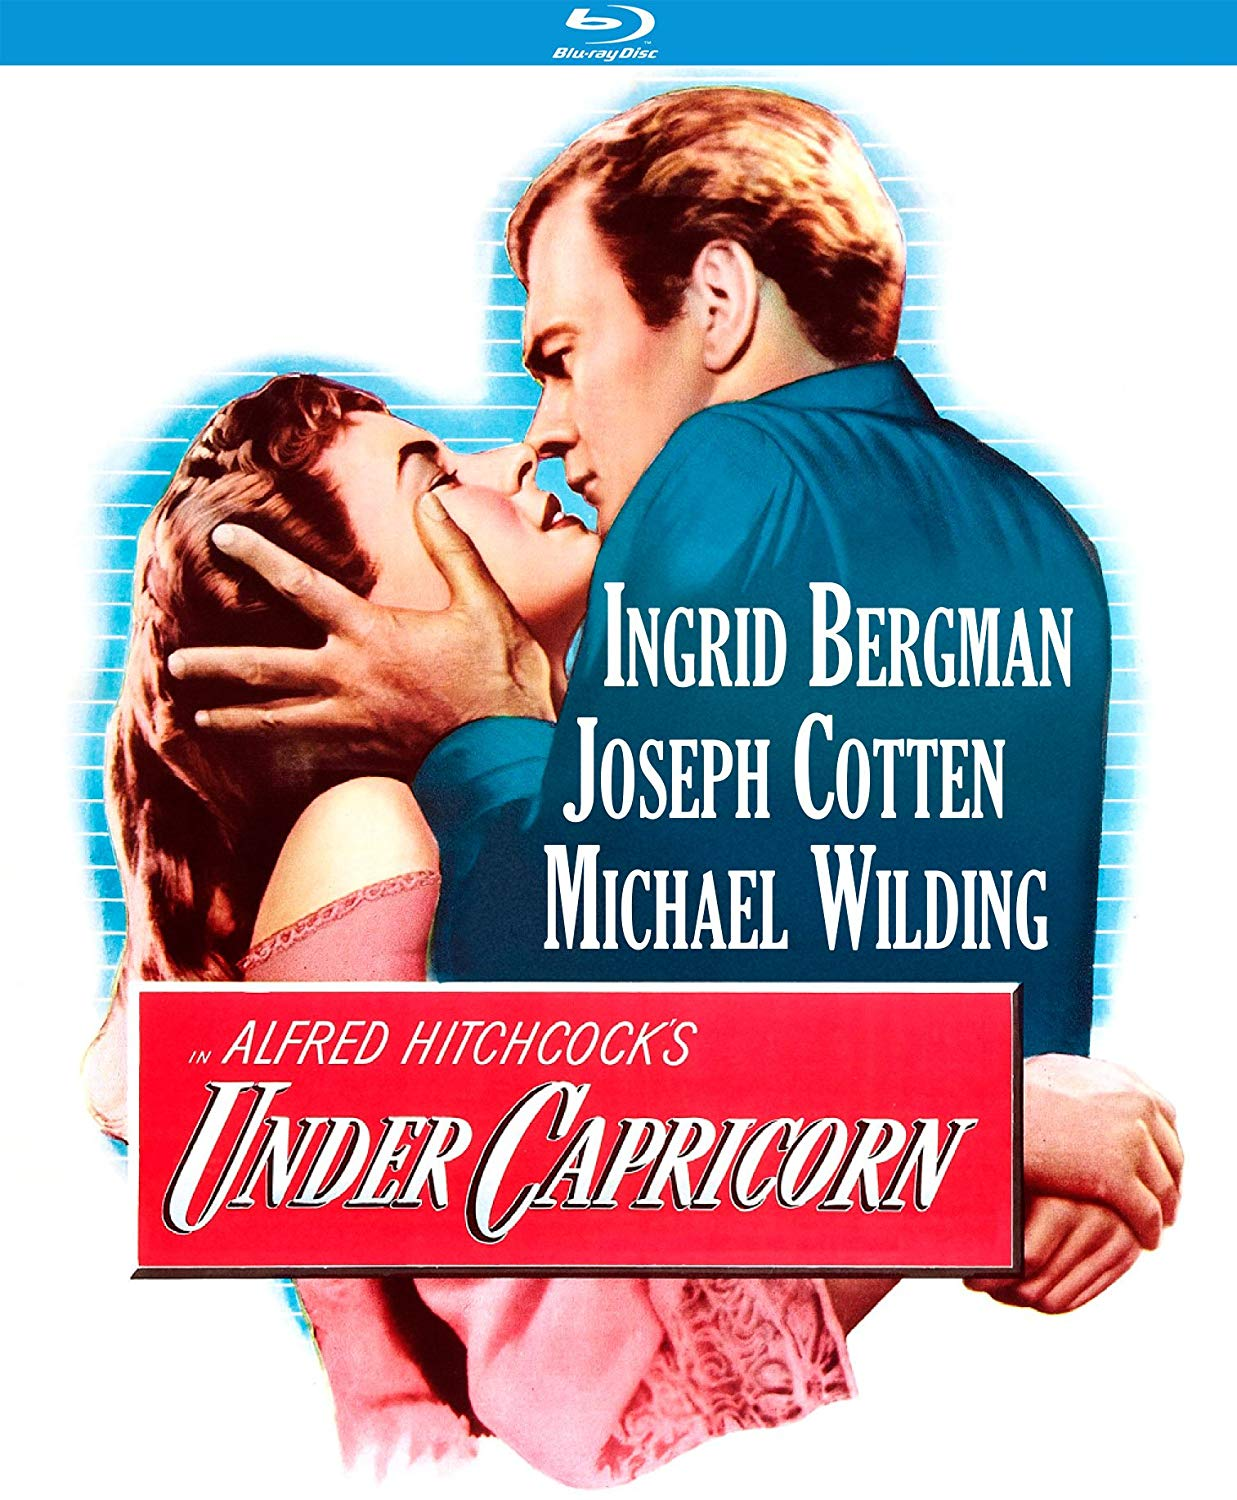 Under Capricorn Blu-ray - Buy at Amazon